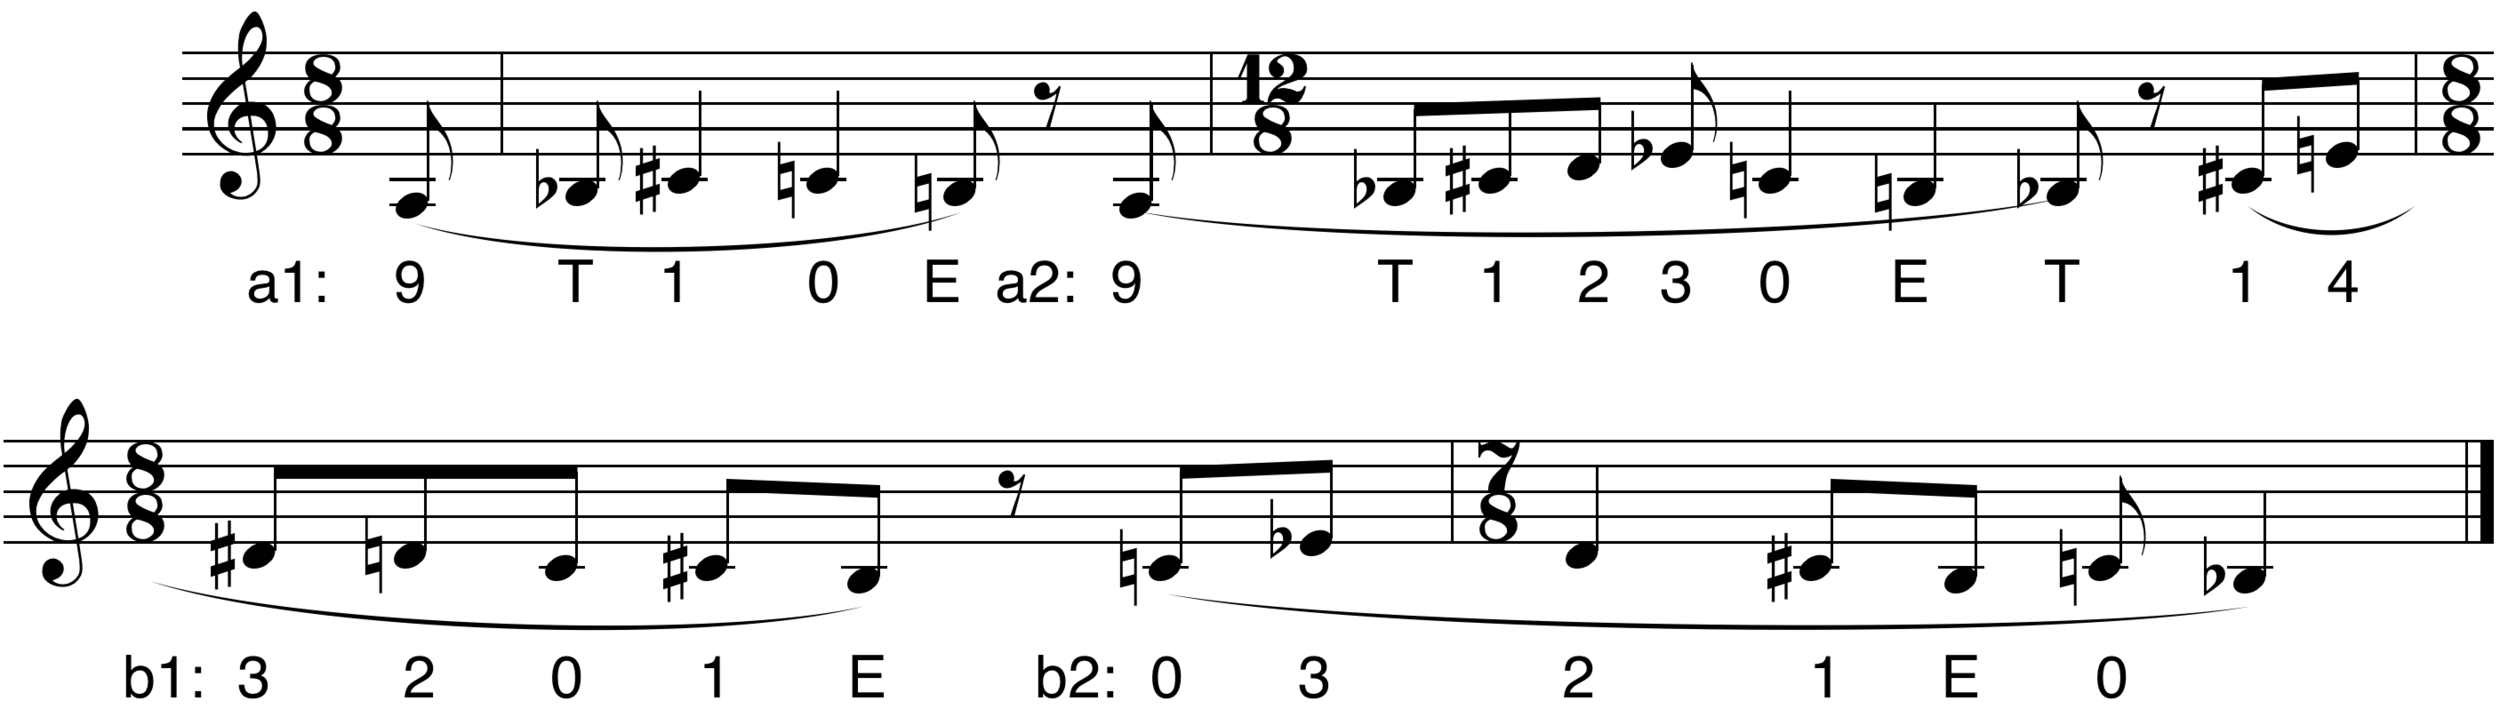 Figure 2. Fugue subject segment and pitch class annotation.